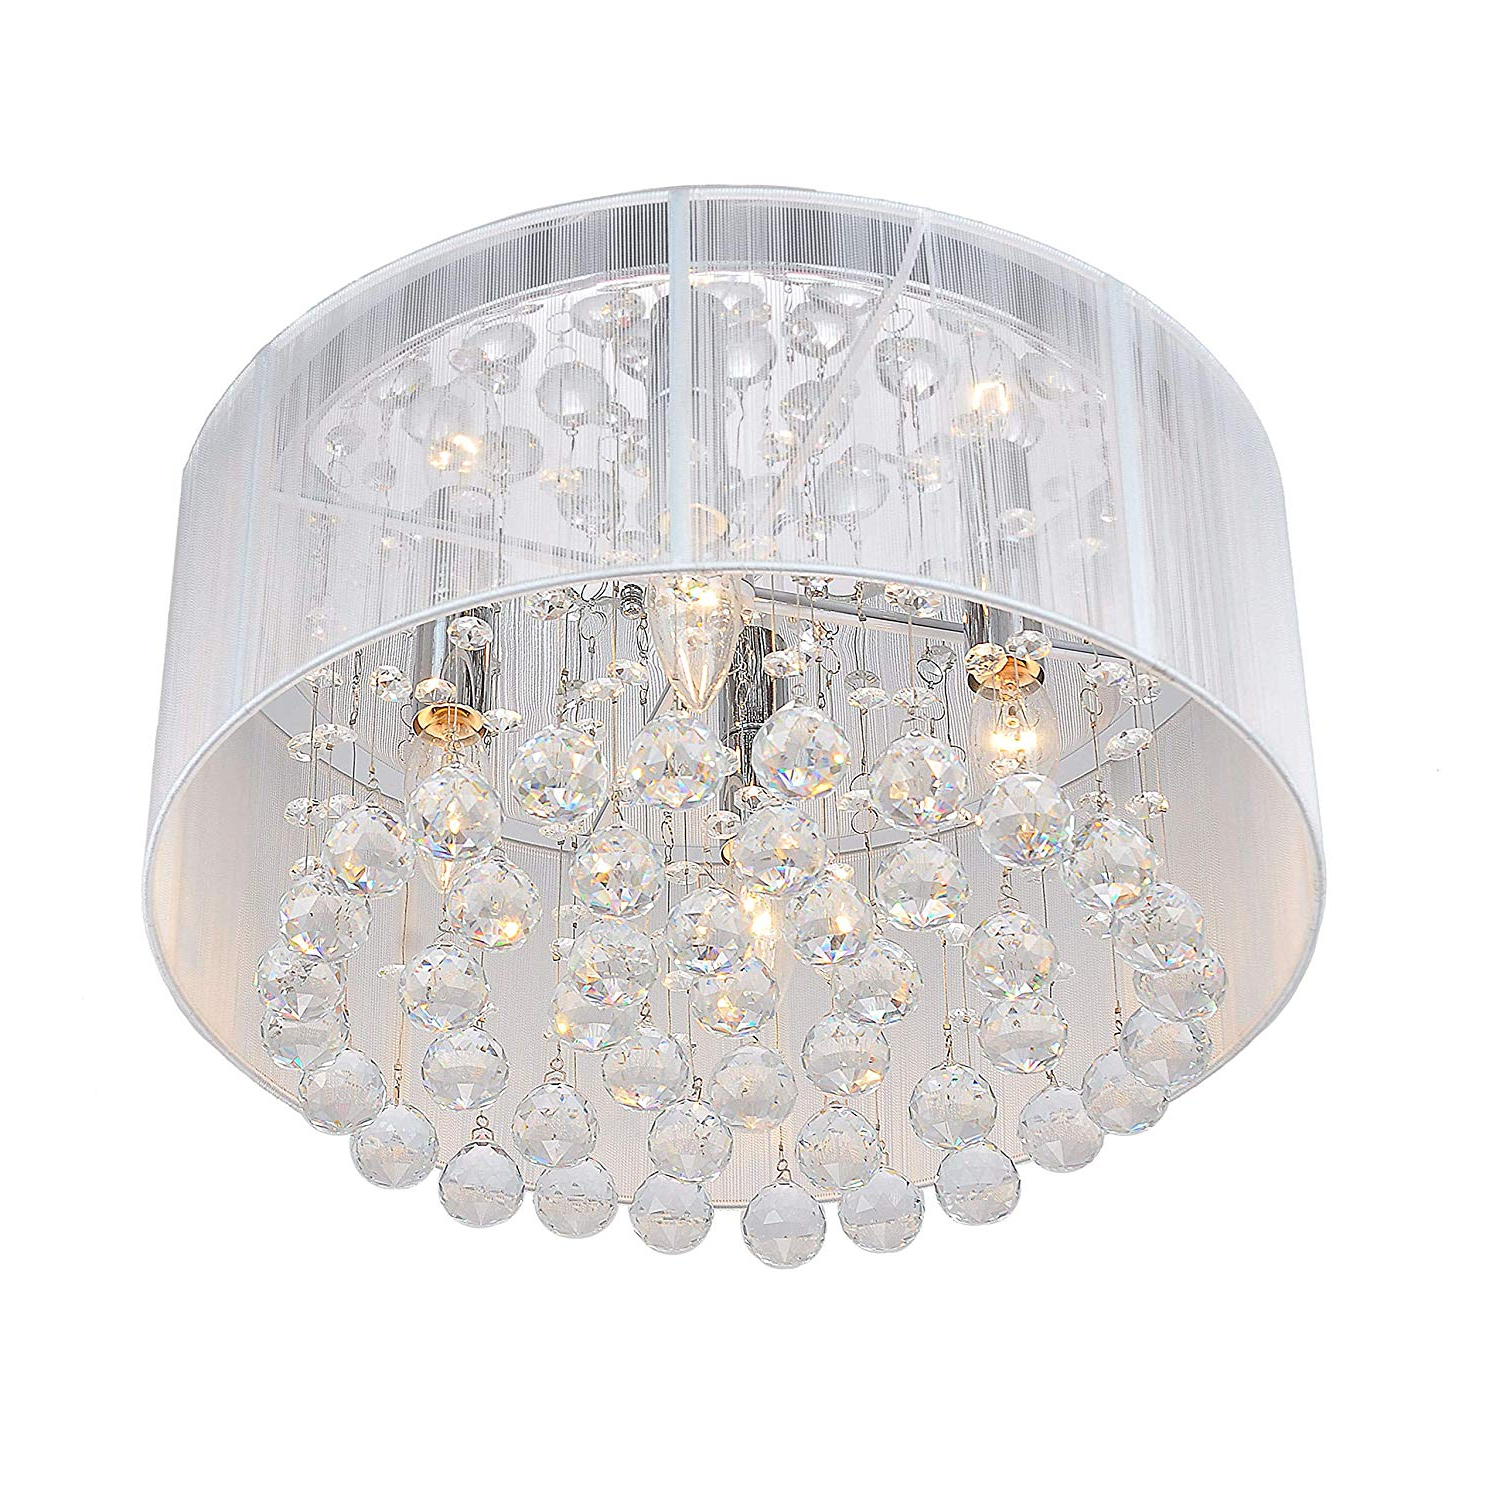 Helina 1 Light Pendants Within Widely Used Flushmount 4 Light Chrome And White Crystal Chandelier (View 18 of 25)